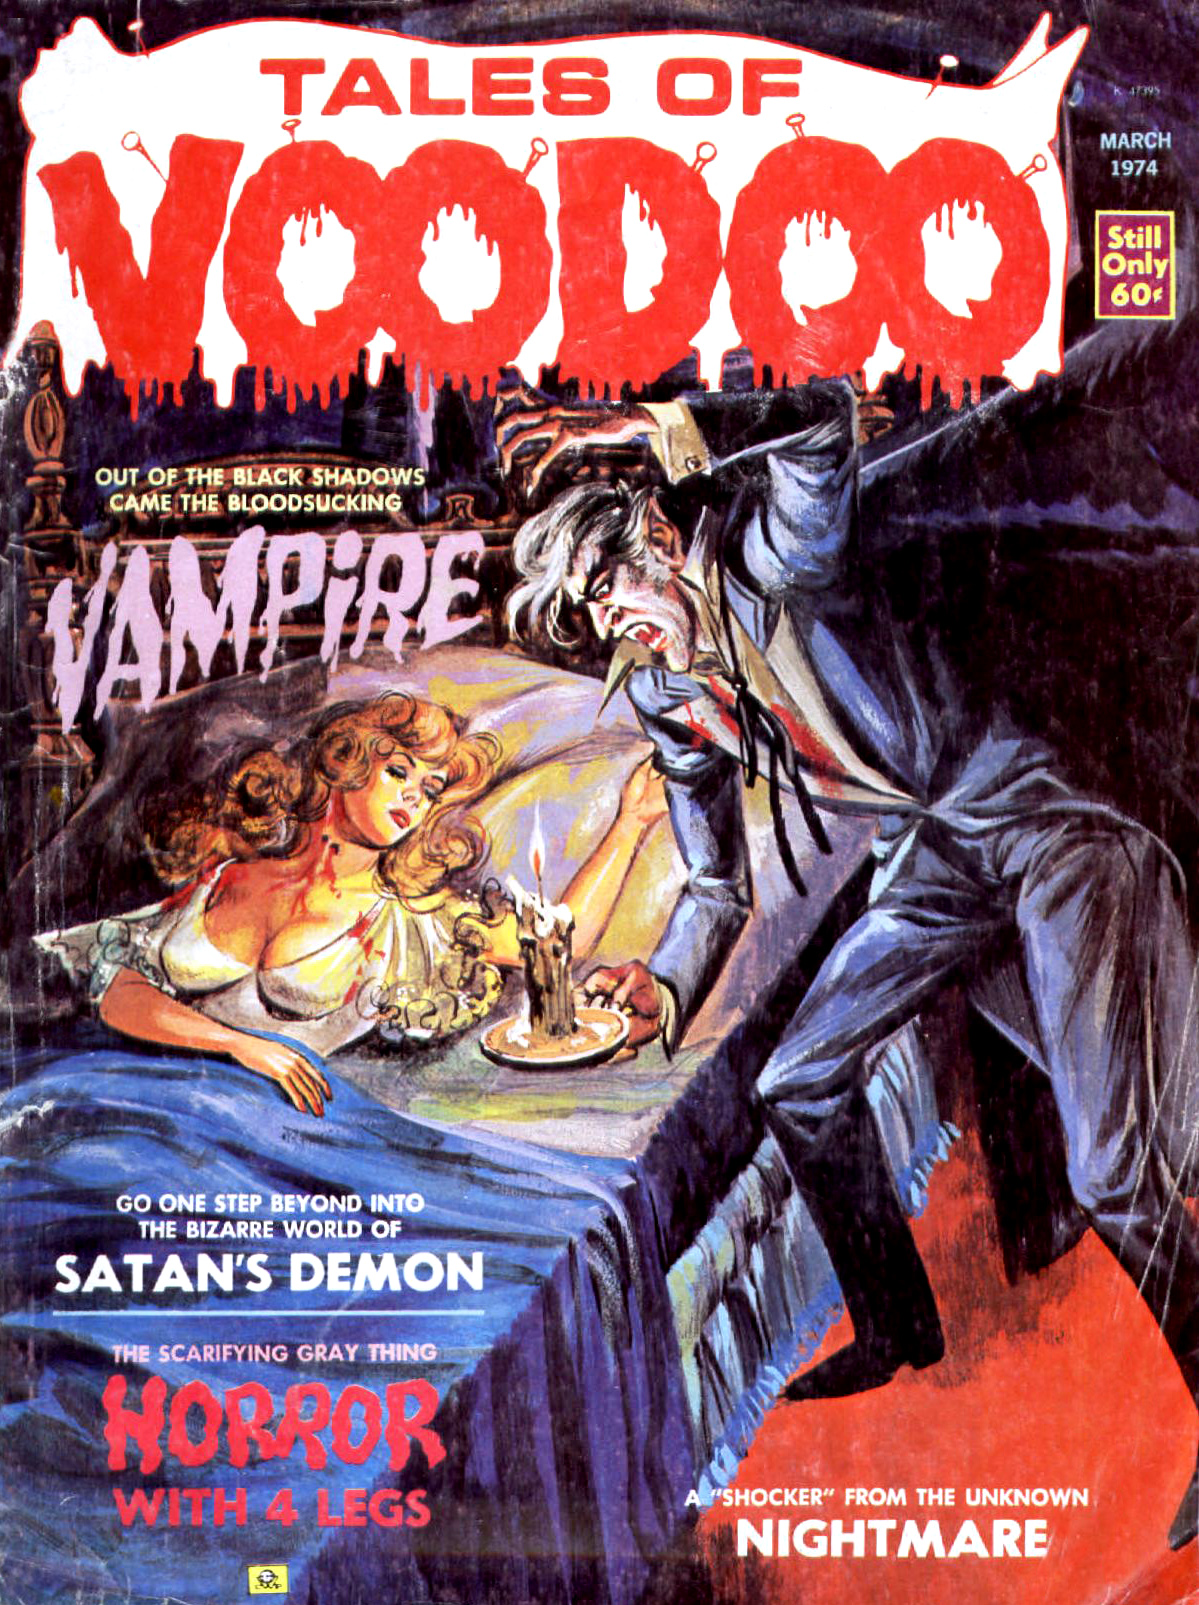 Tales of Voodoo Vol. 7 #2 (Eerie Publications 1974)